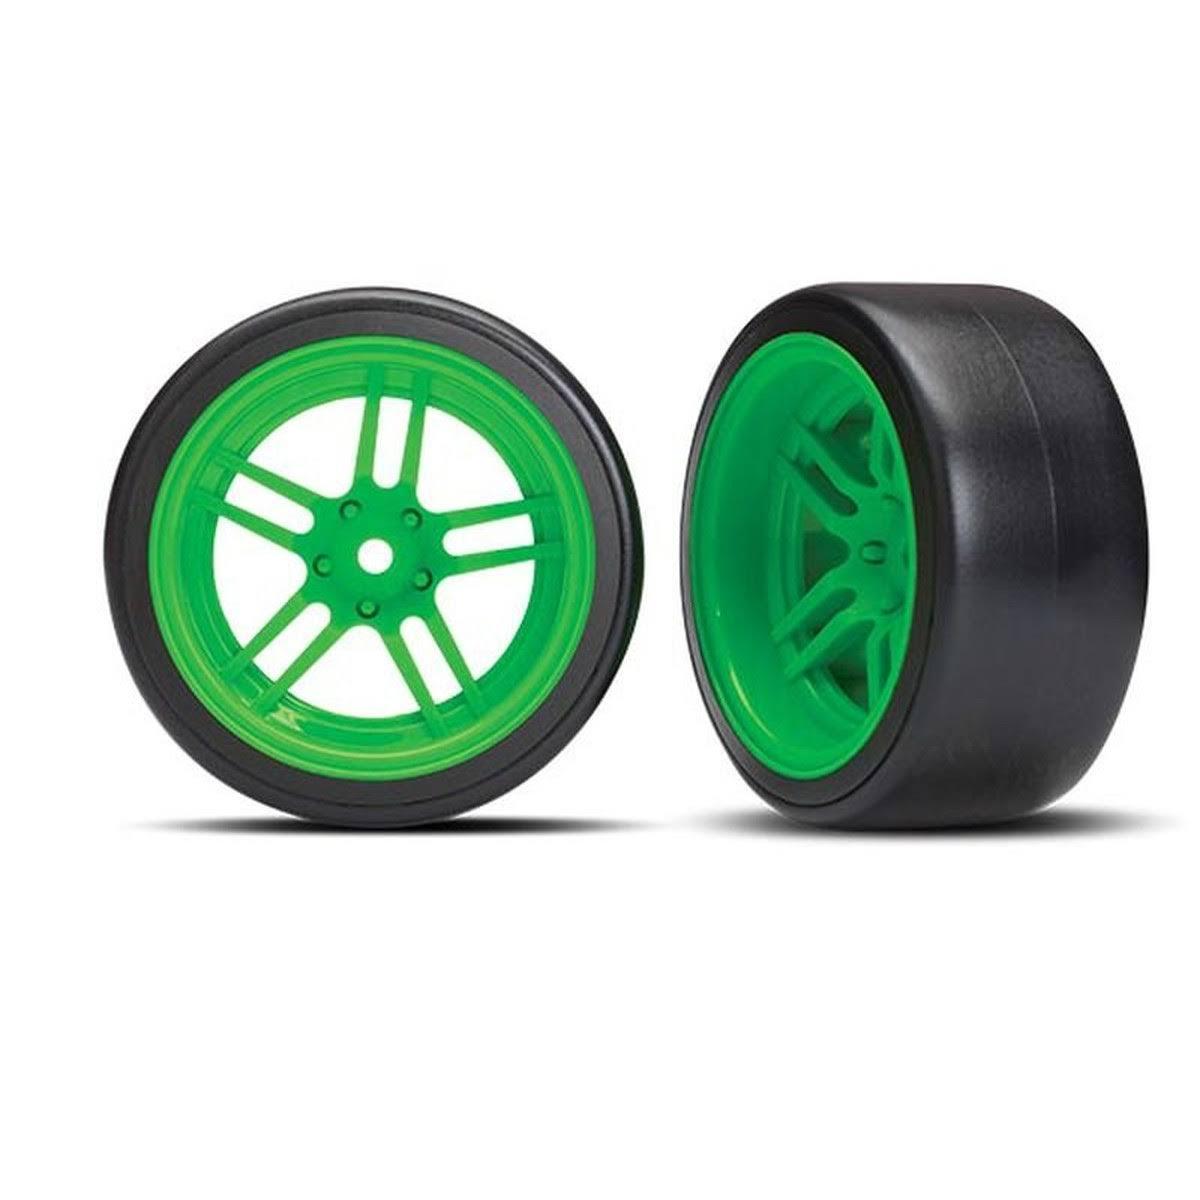 Traxxas 4-TEC 2.0 Rear Drift Tires on Split-Spoke Green Wheels (2)